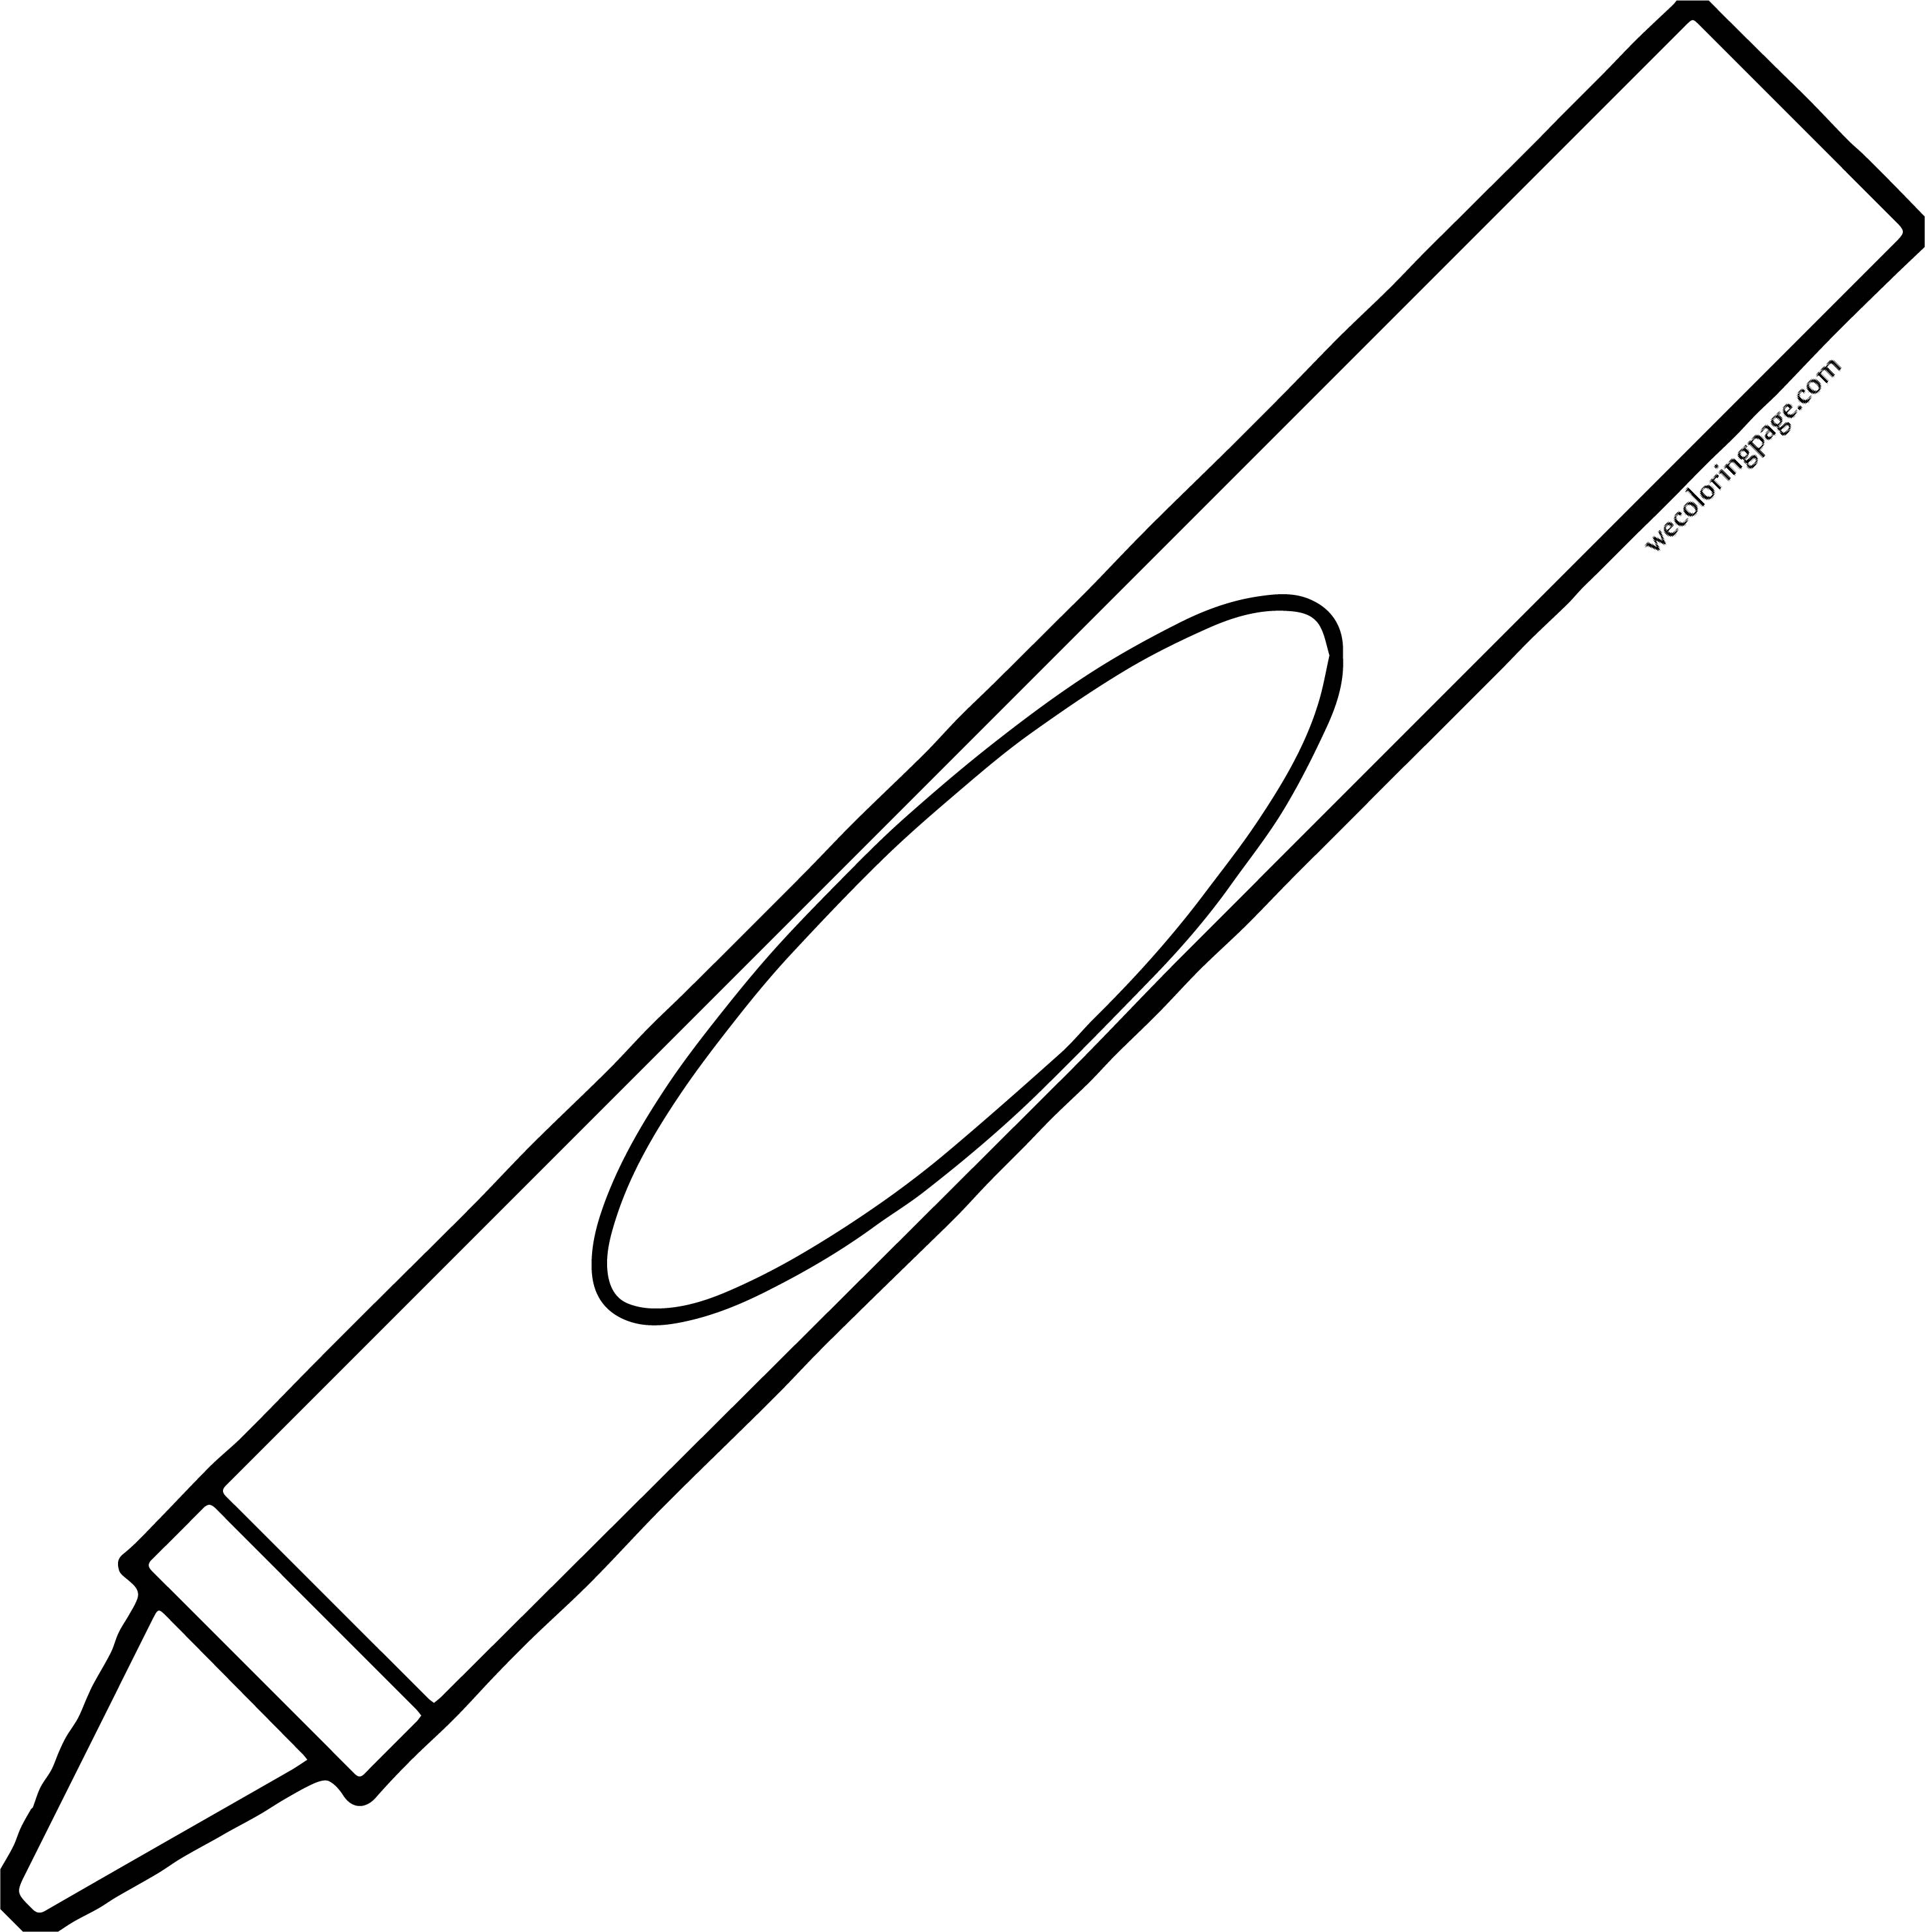 Crayon Tall Pen Coloring Page